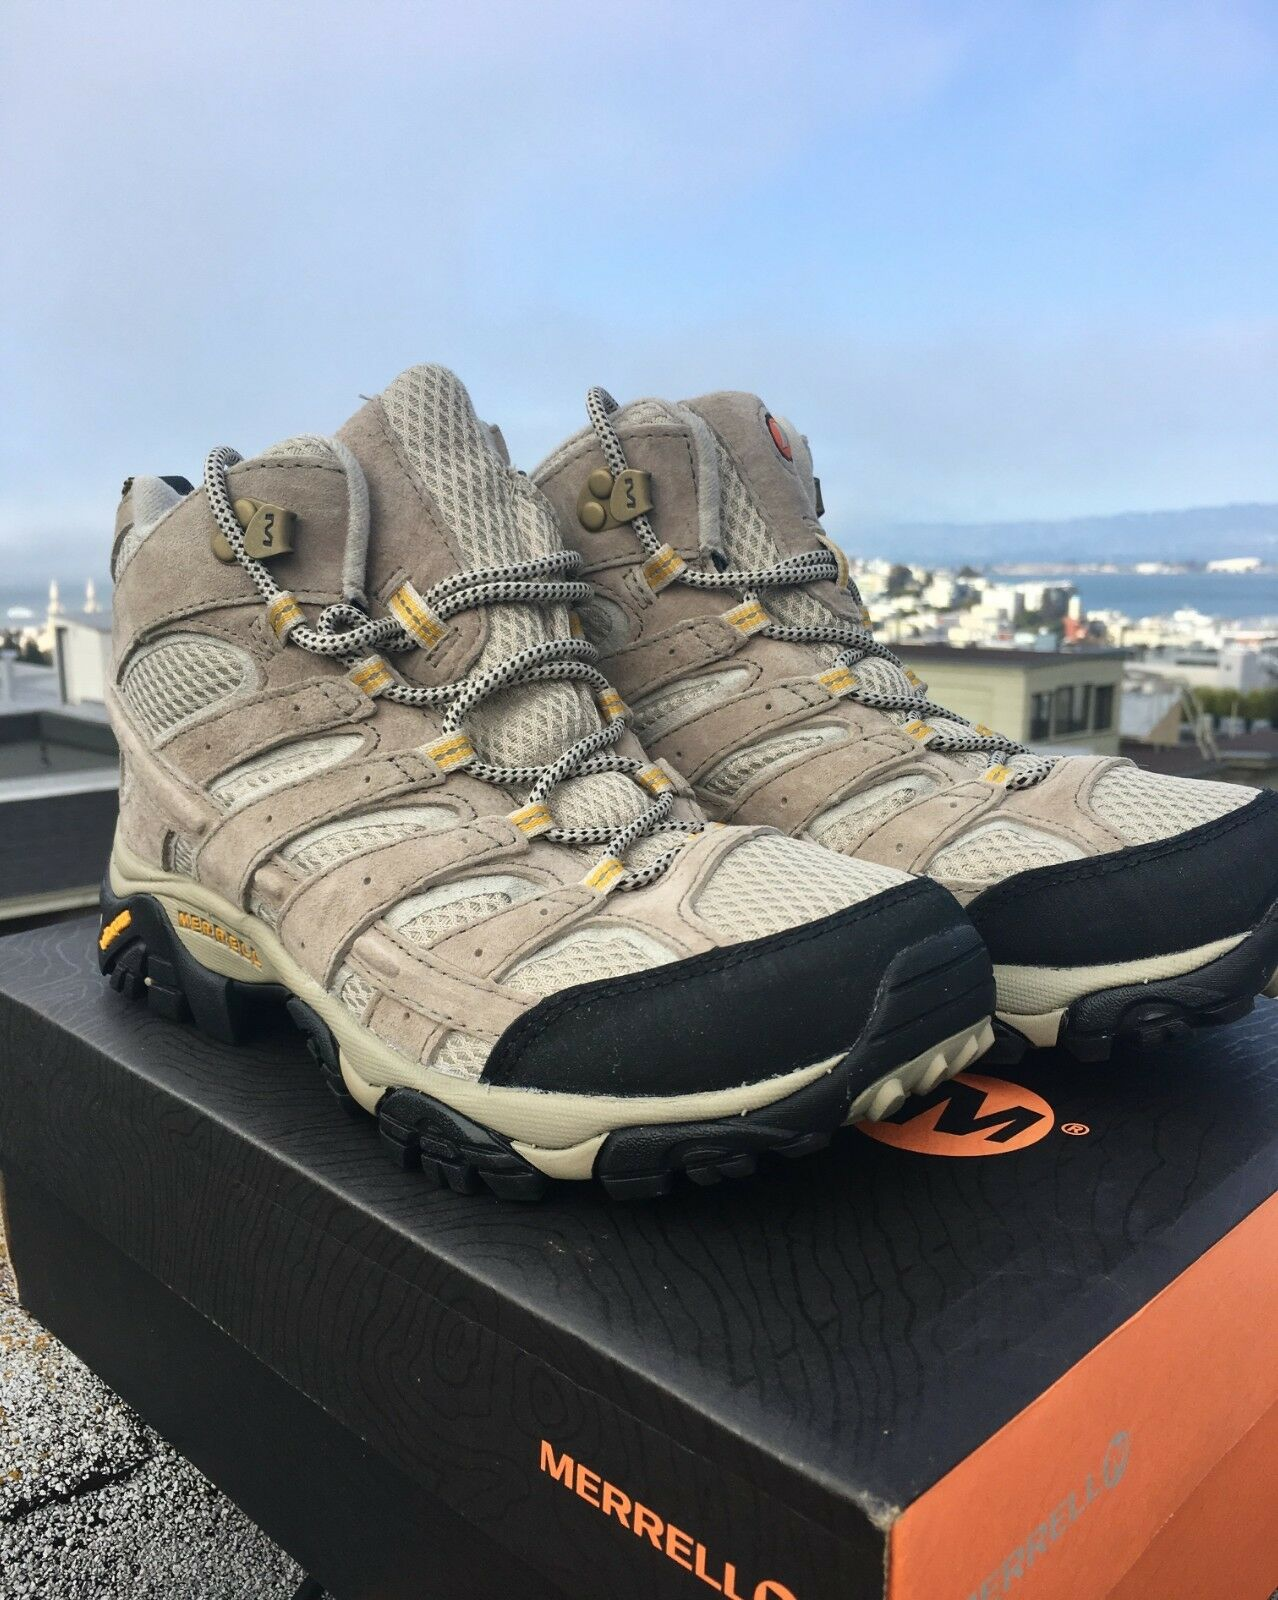 Merrell Women's Moab 2 Vent Mid Hiking Boot - Size Size Size 8 (New with box) - Taupe 5be1cc